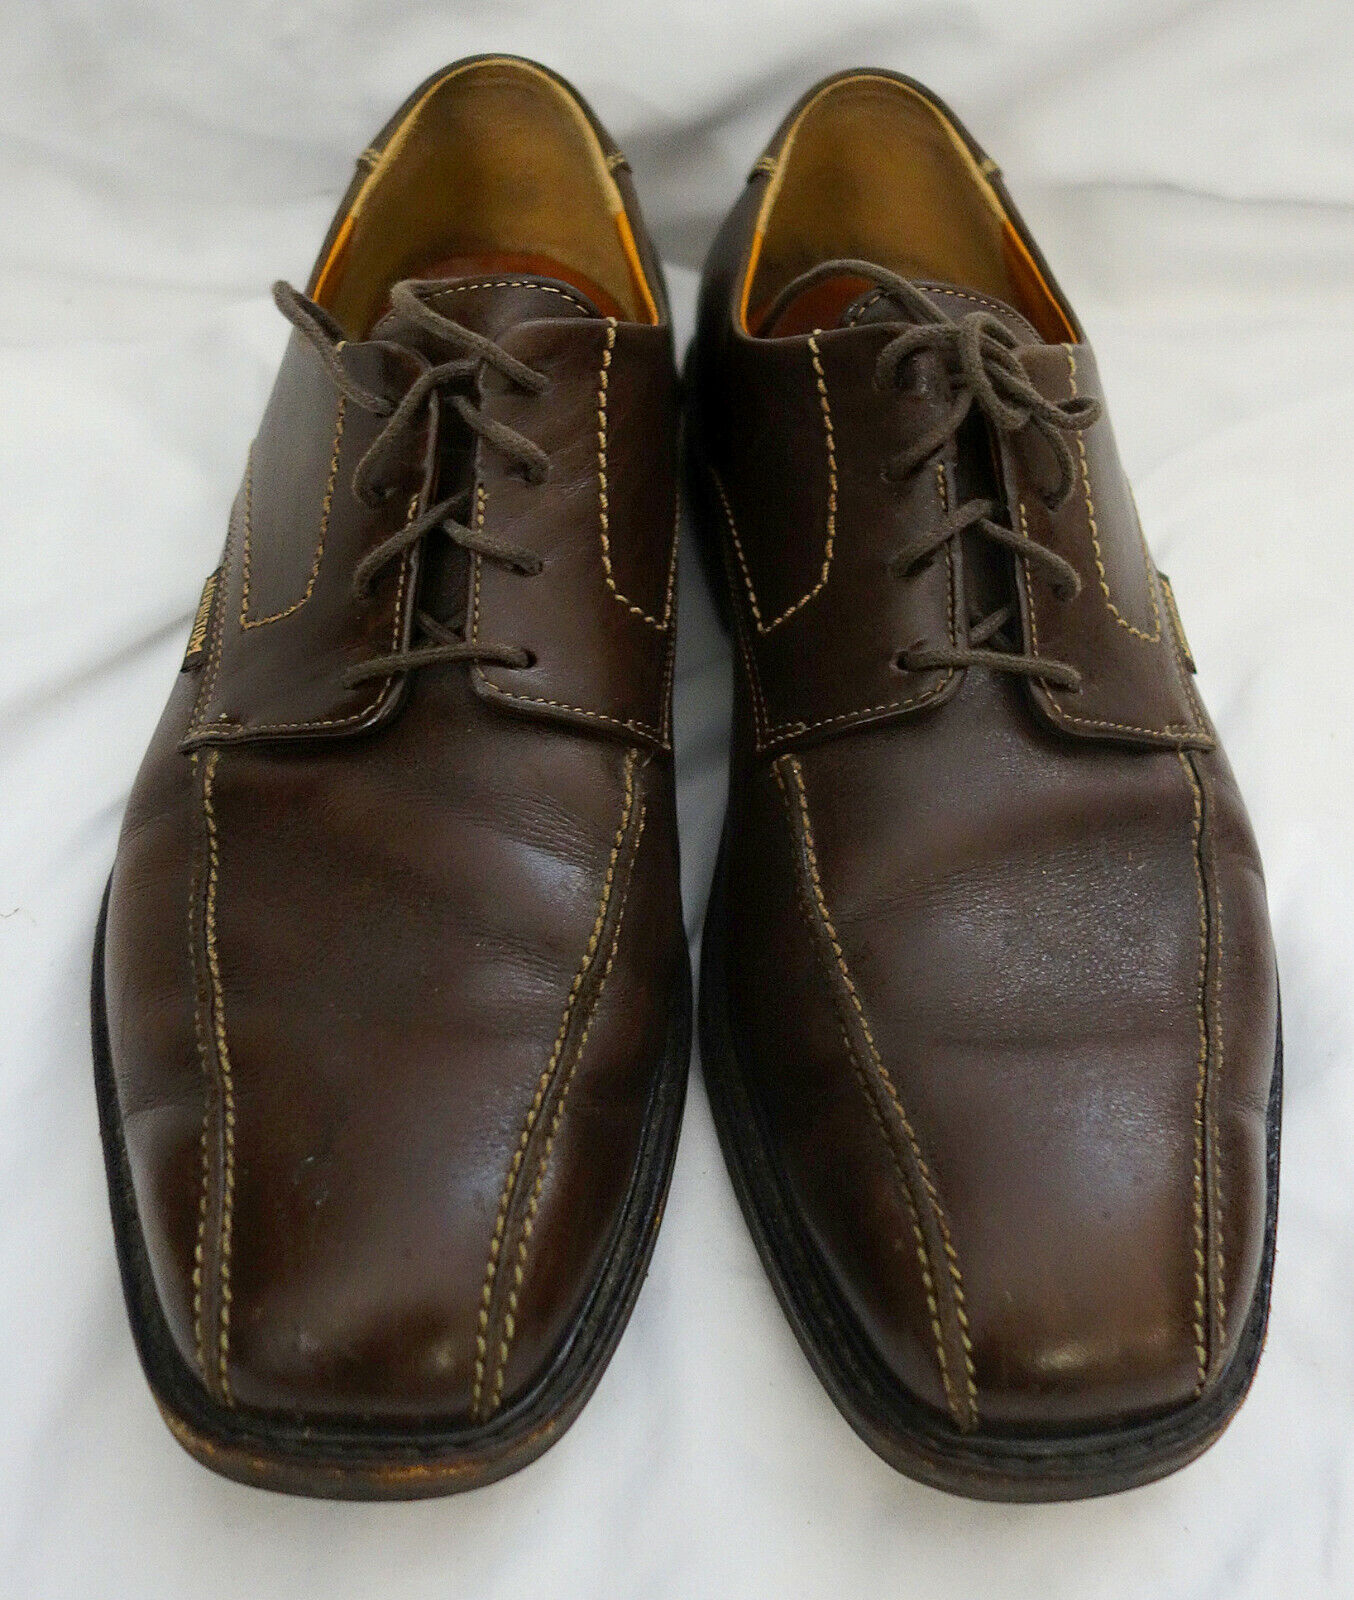 Mens Mephisto shoes US Size 10 Goodyear Welt Perfect